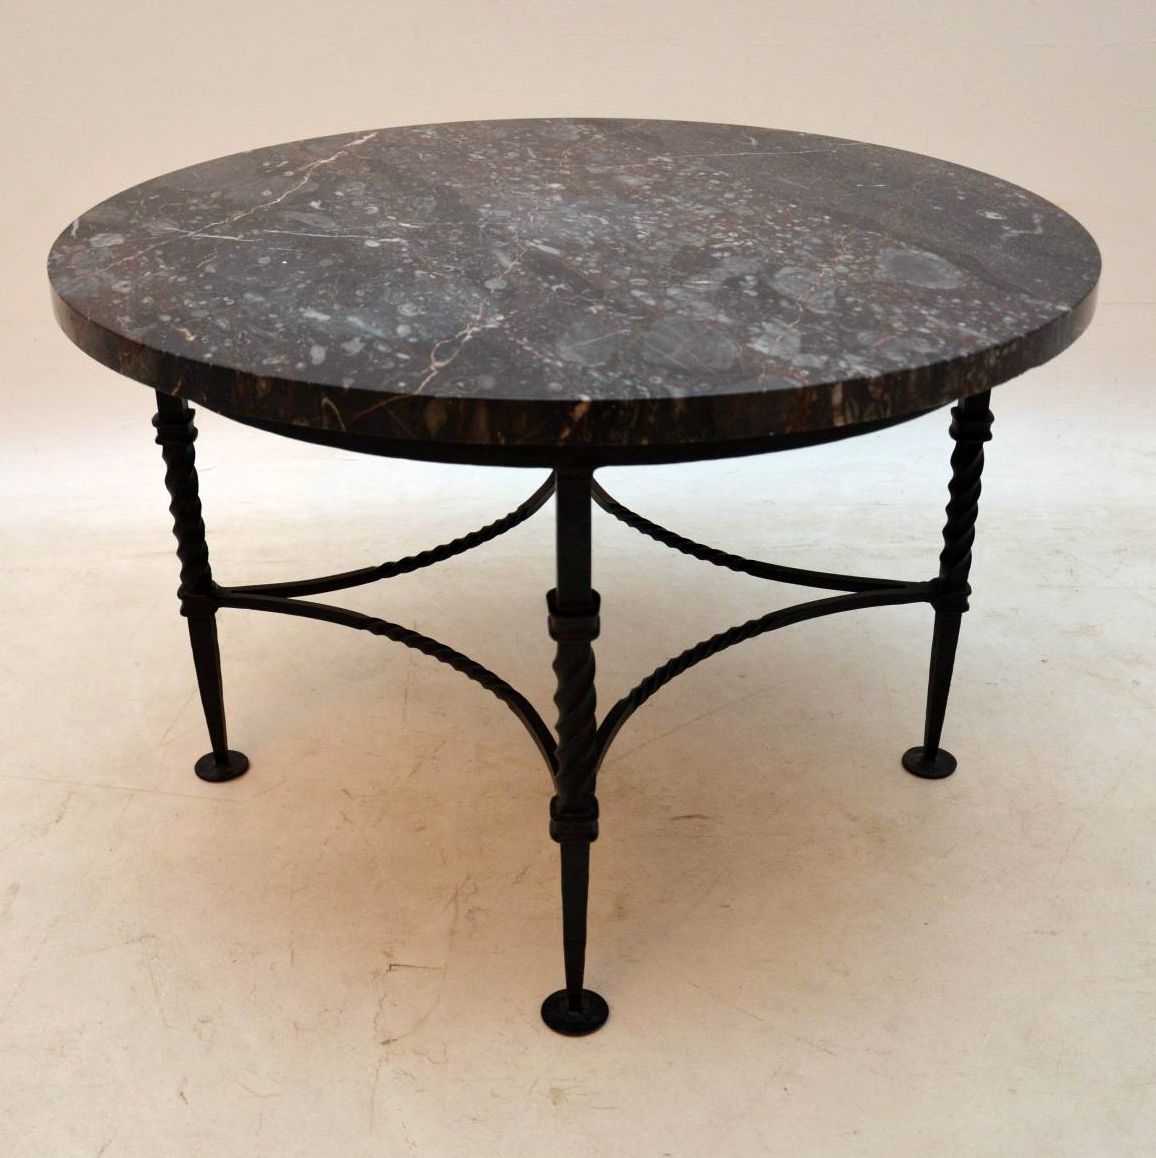 Wrought Iron Coffee Table With Drawers: 1950's Vintage Marble & Wrought Iron Coffee Table